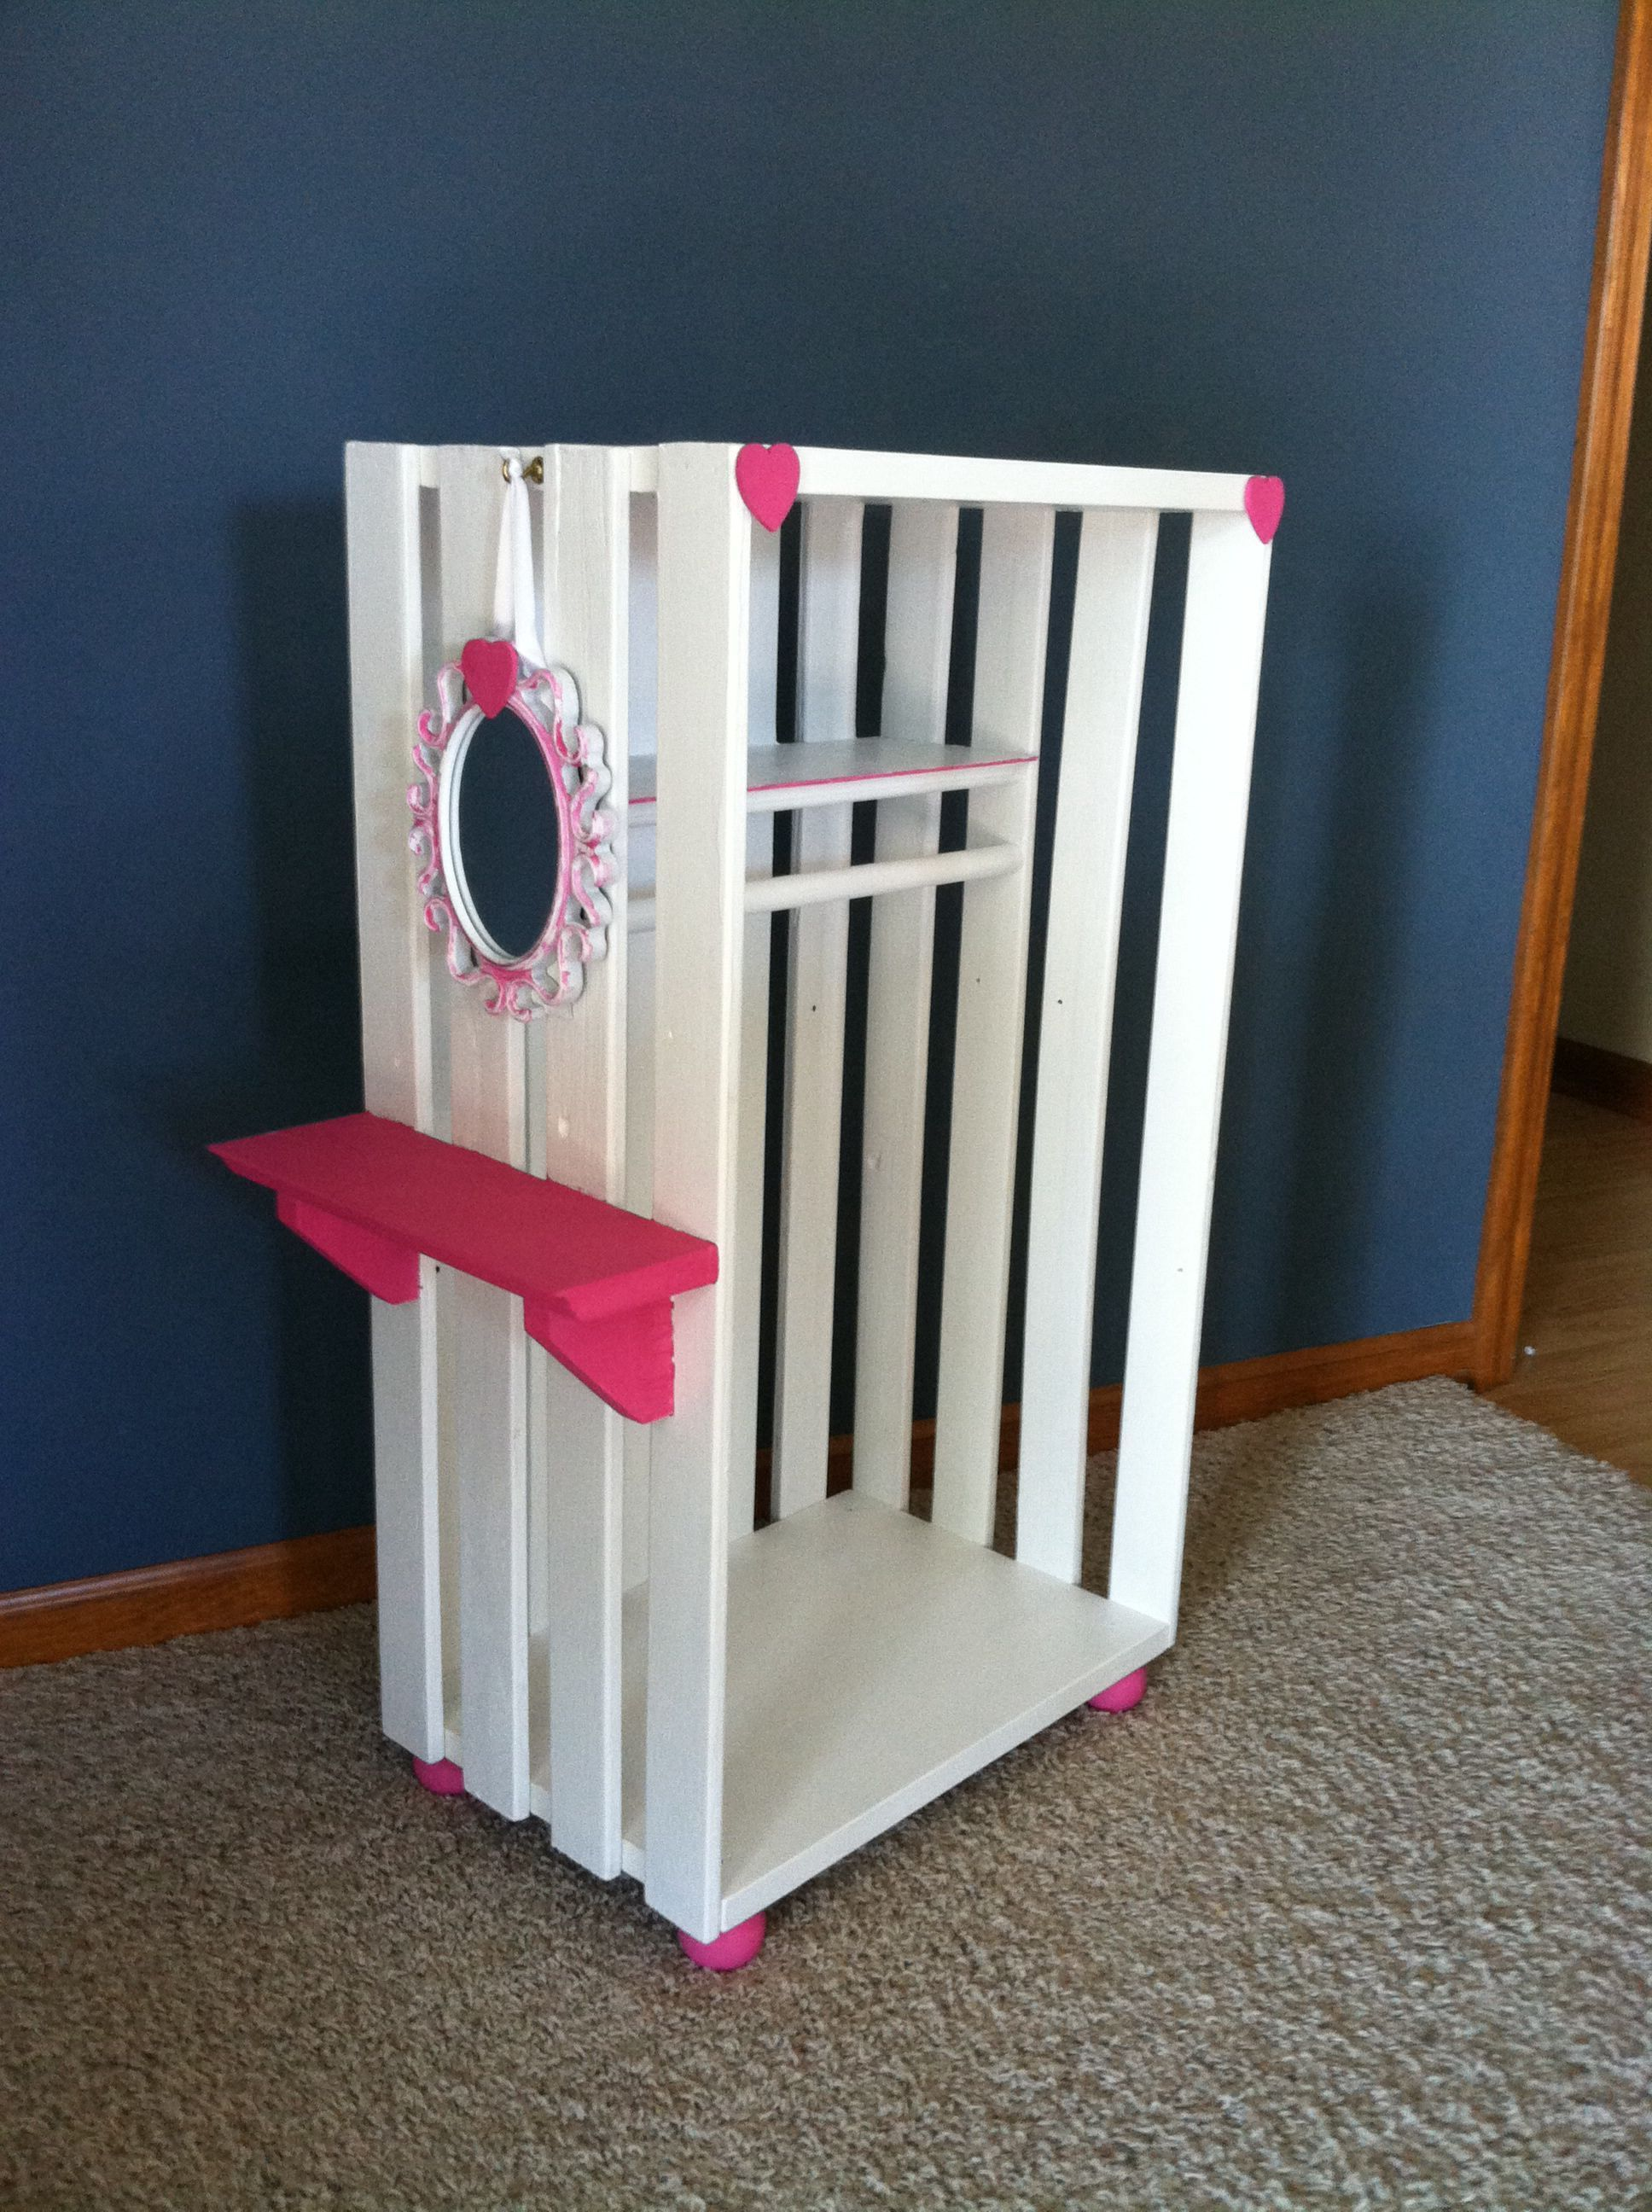 New American Girl Doll Furniture Plans Free